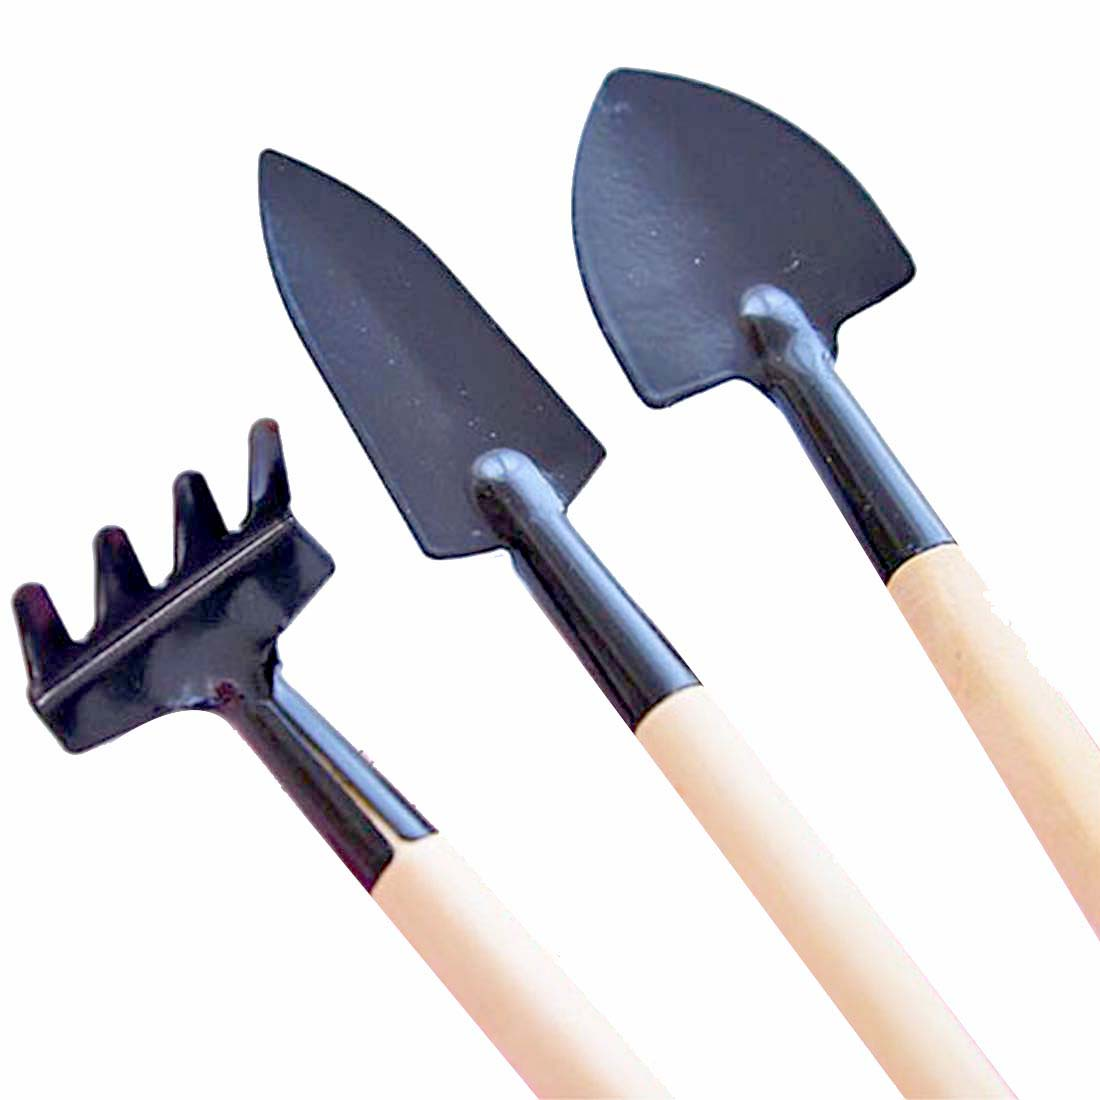 Garden Tools Uxcell 3 In 1 Set Hollow Out Shaped Wooden Handgrip Black Metal Rake Digging Trowel Plants Cultivator Garden Horticulture Tools